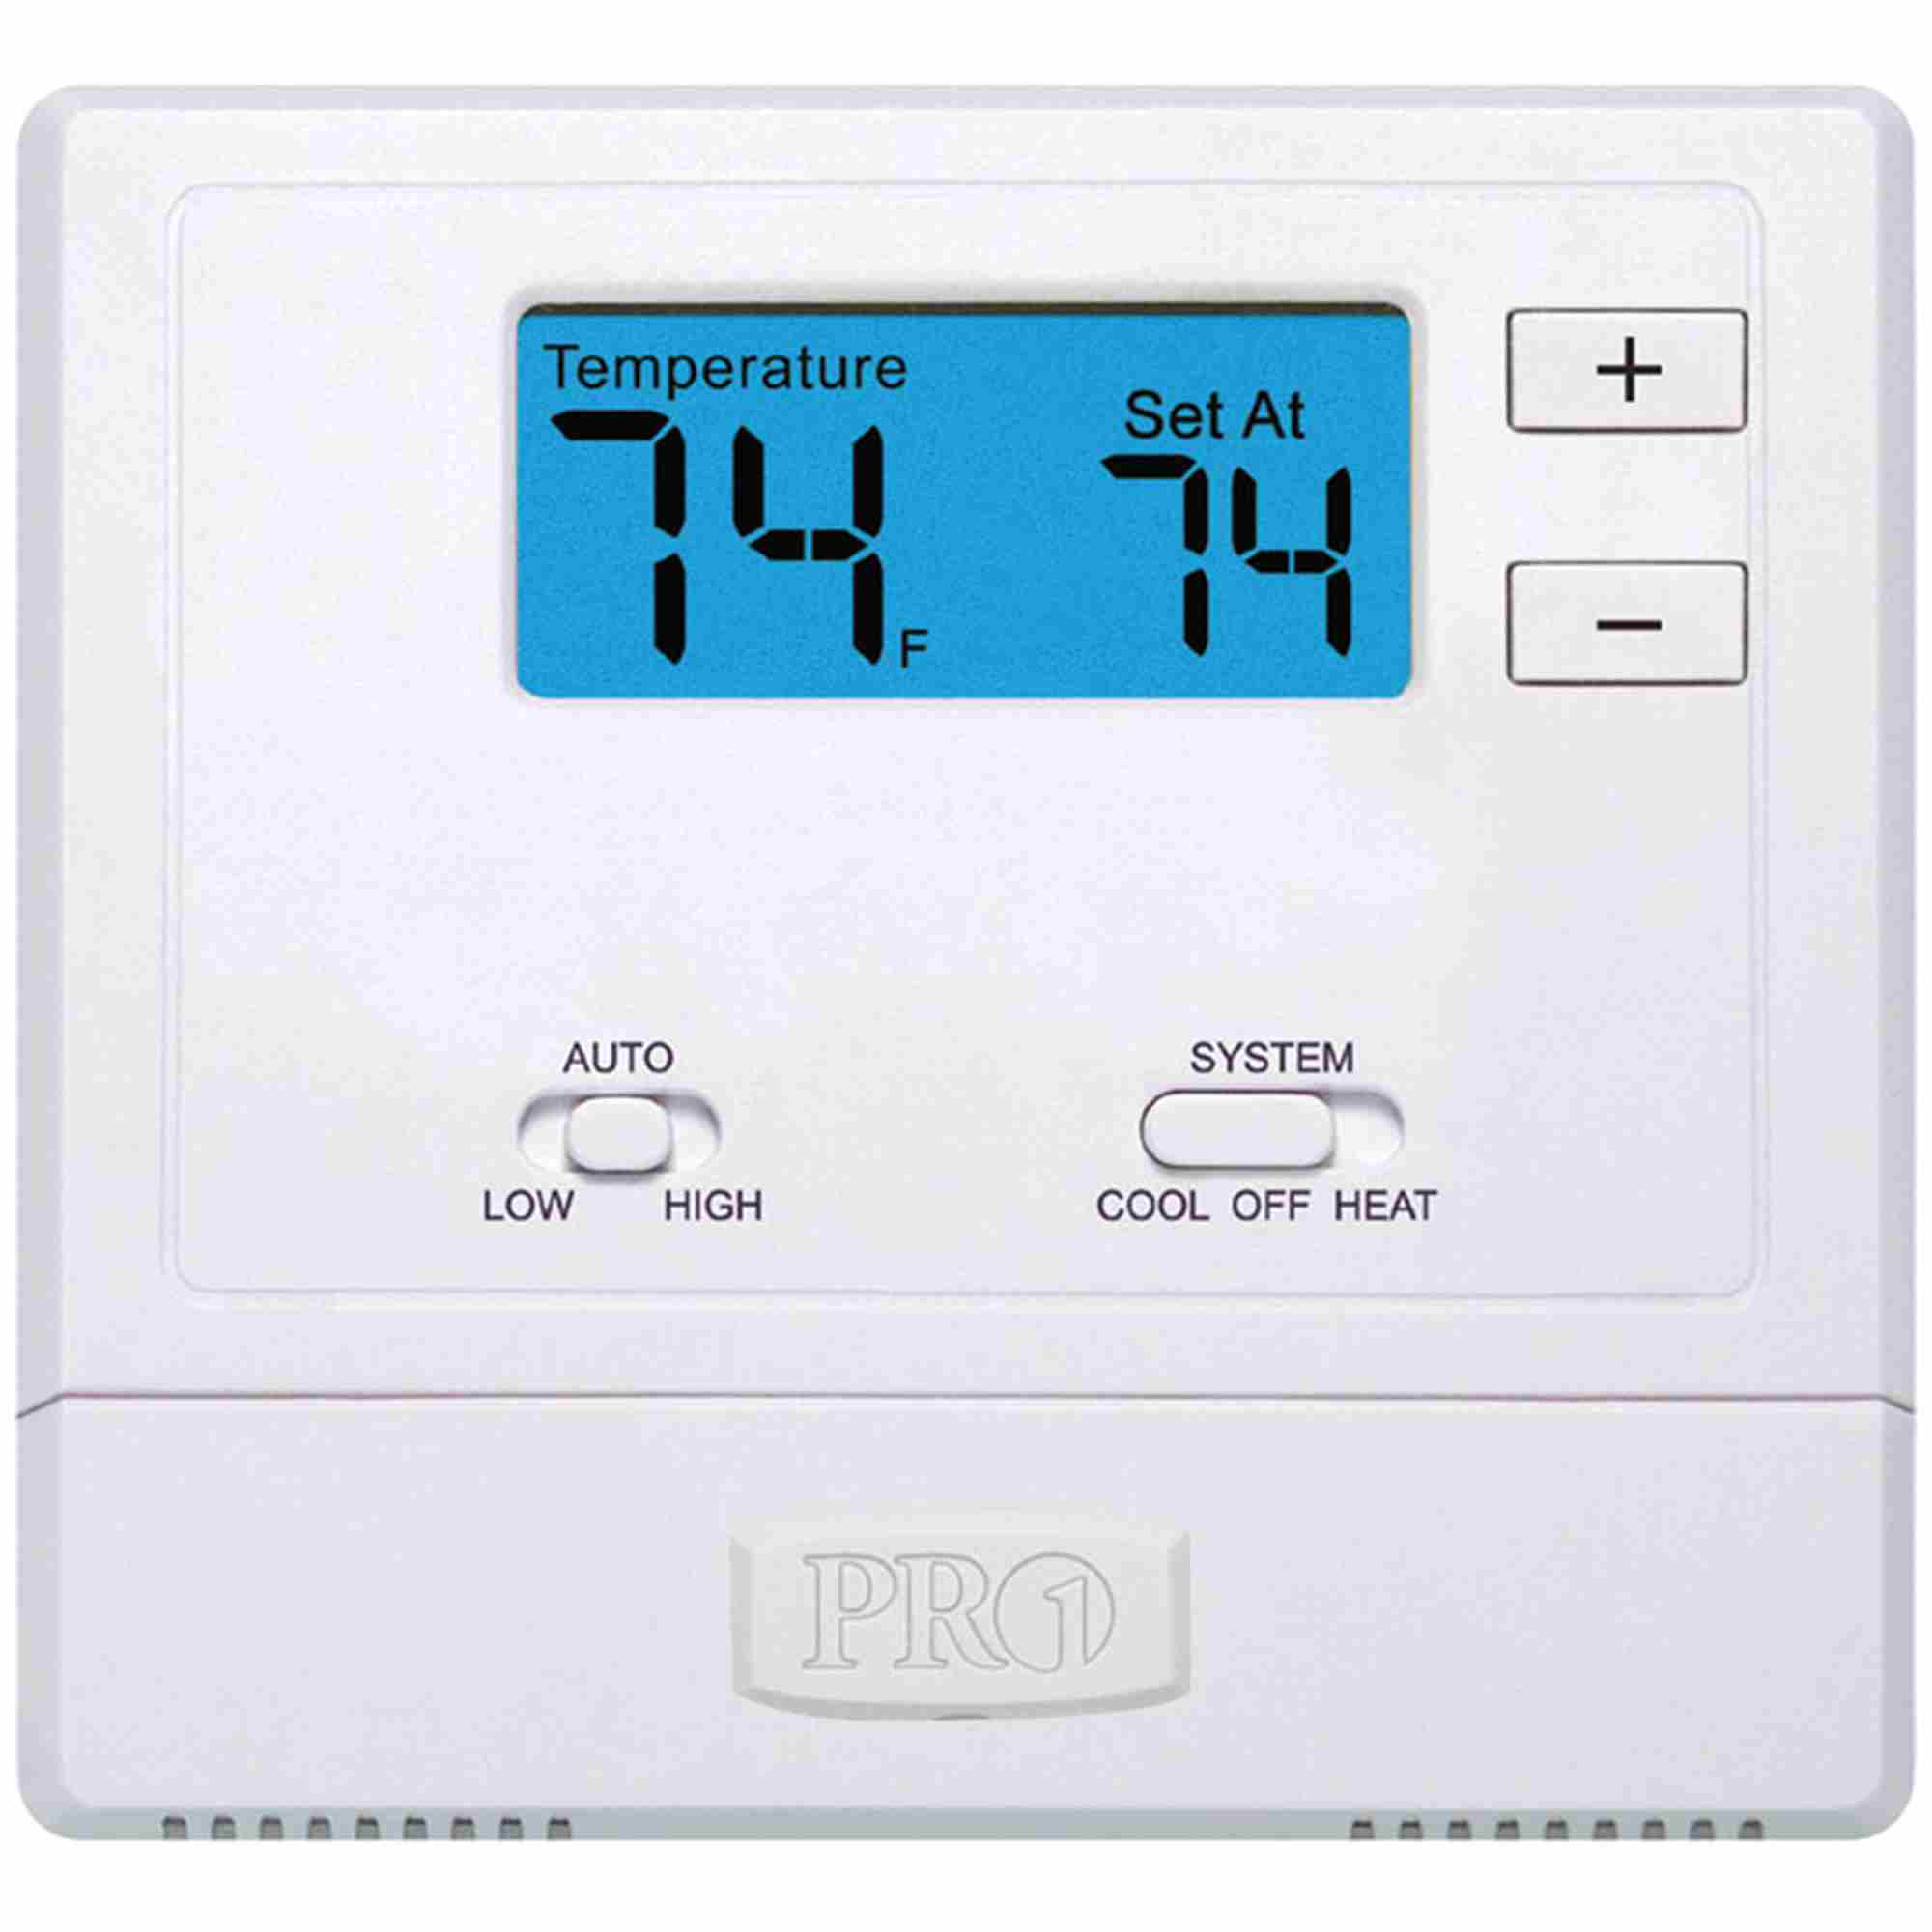 hight resolution of t631w 2 pro1 iaq thermostat wireless ebay 2 stage heat pump thermostat wiring pro1 thermostat wiring diagram